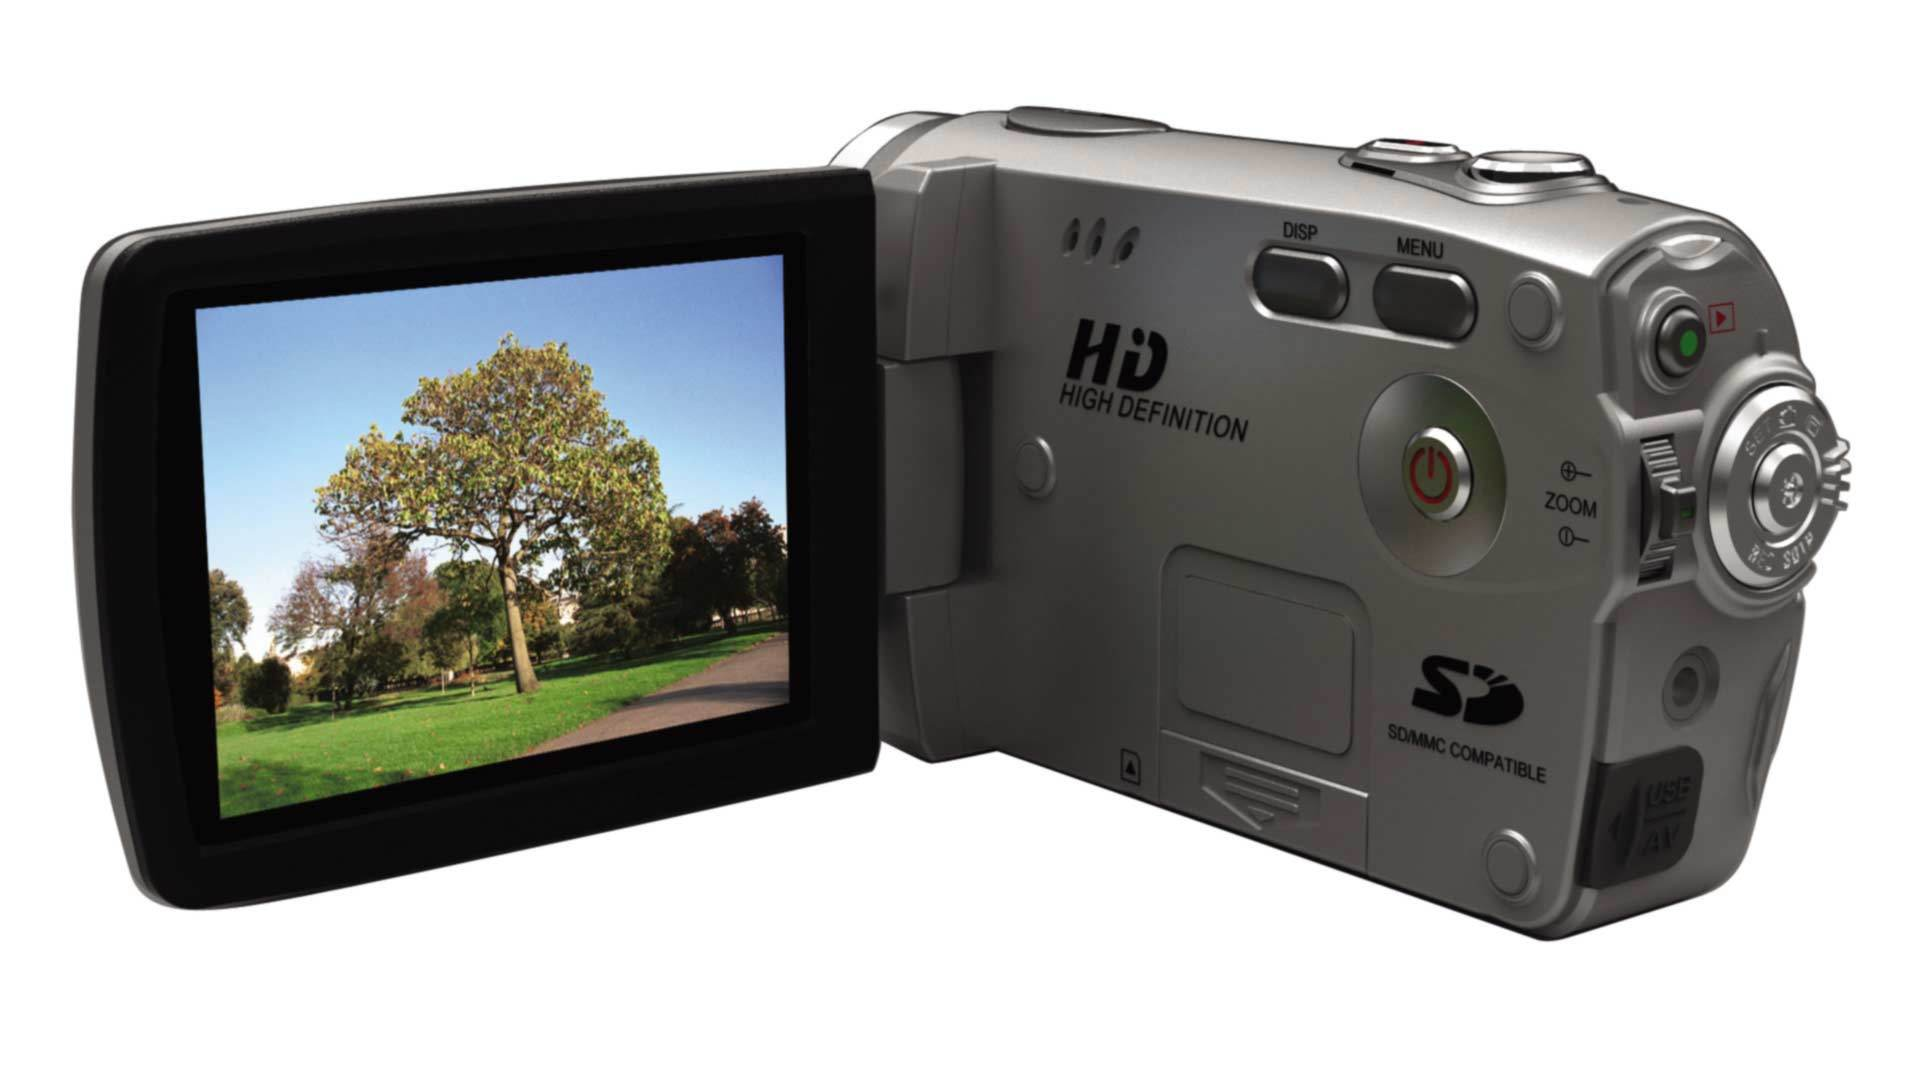 Best professional camcorder - Lookup BeforeBuying